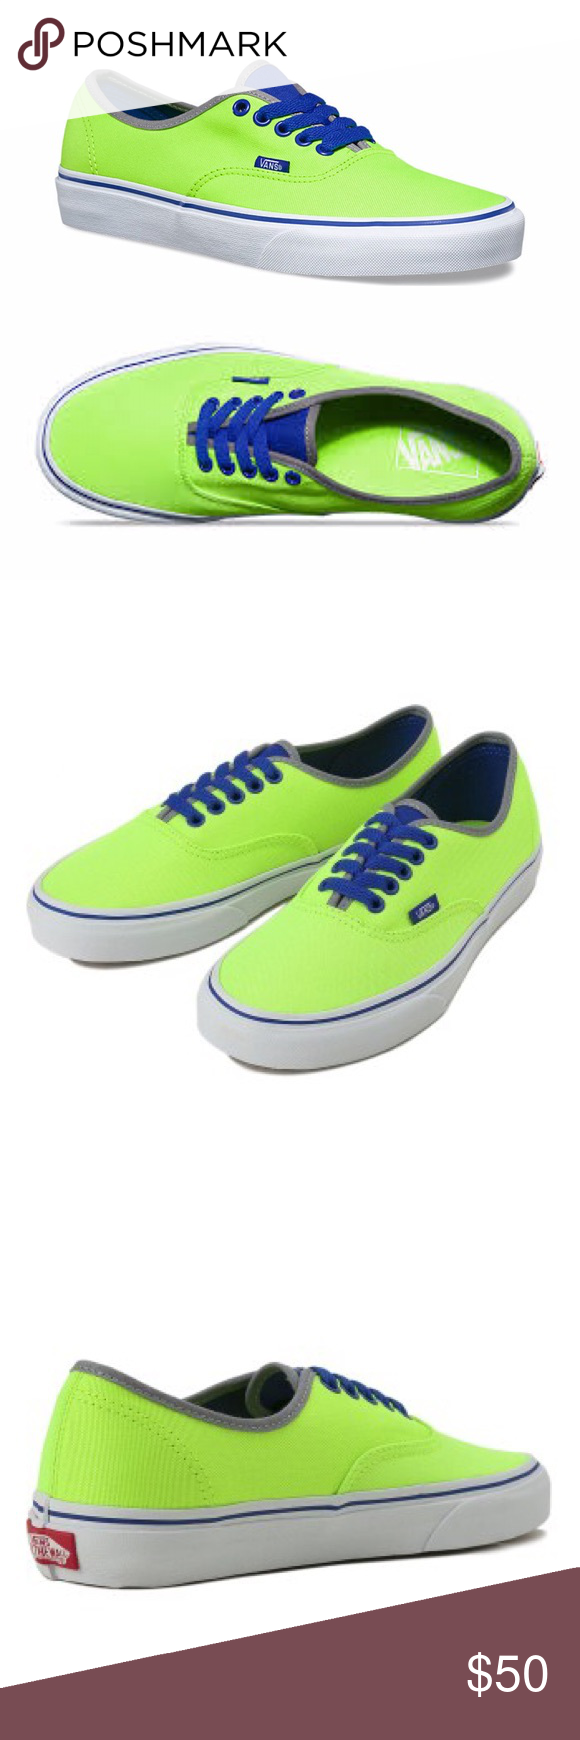 75e2938b85c5 Highlighter Green Neon Vans 100% vegan canvas vans in bright neon green.  Blue laces. Amazing contrast! Brand new in box! Vans Shoes Sneakers